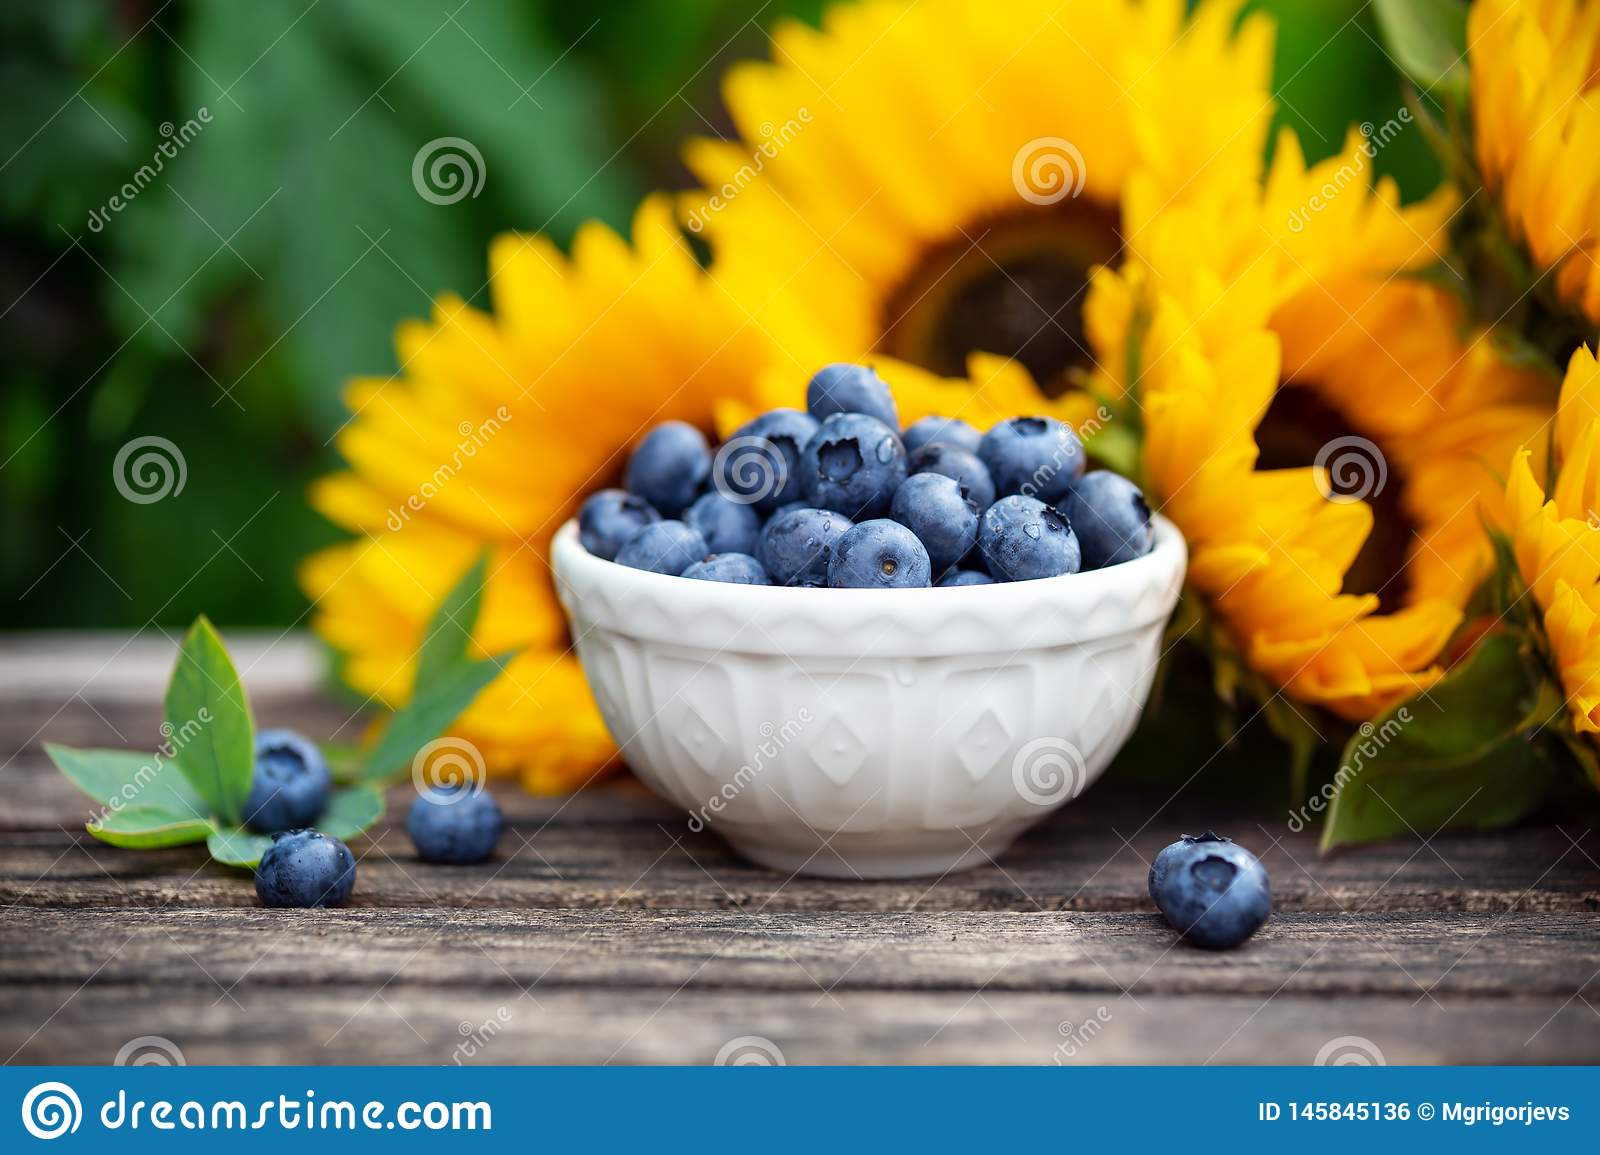 Ripe Blueberries In White Bowl With Sunflower Bouquet On Wooden Table Summer Theme Stock Photo Image Of Dessert Branch 145845136